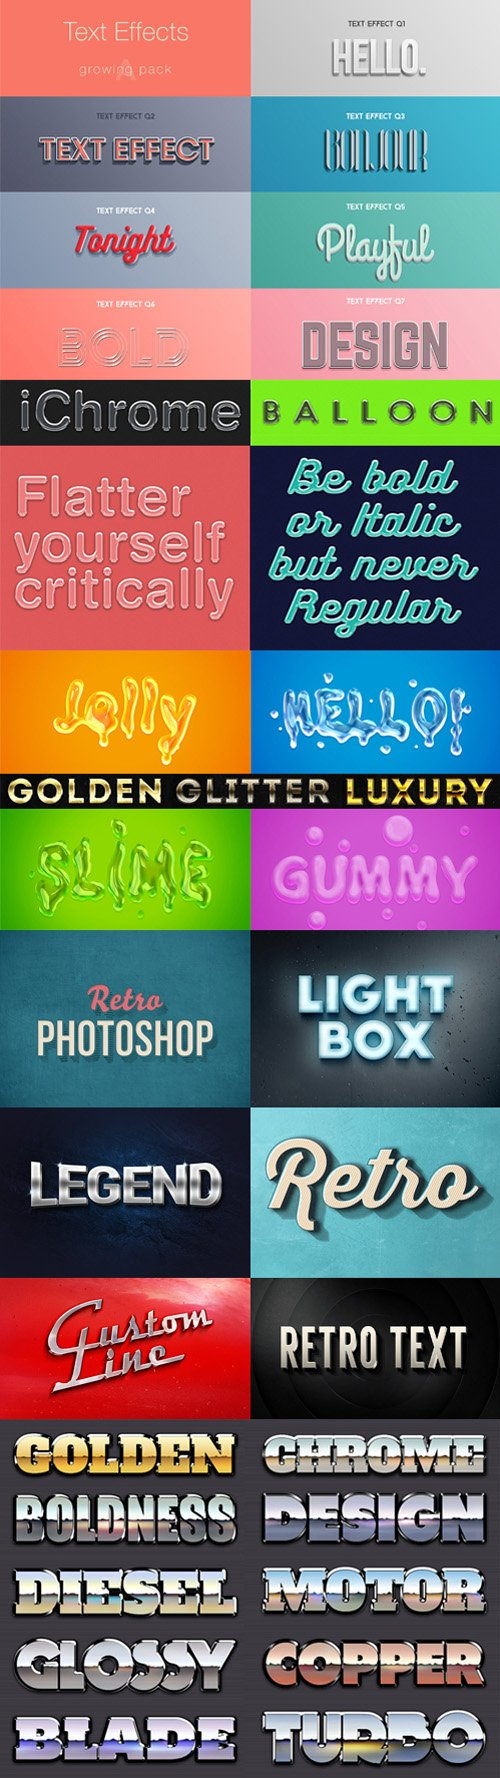 35 Photoshop Text Effects Pack [ASL/PSD]